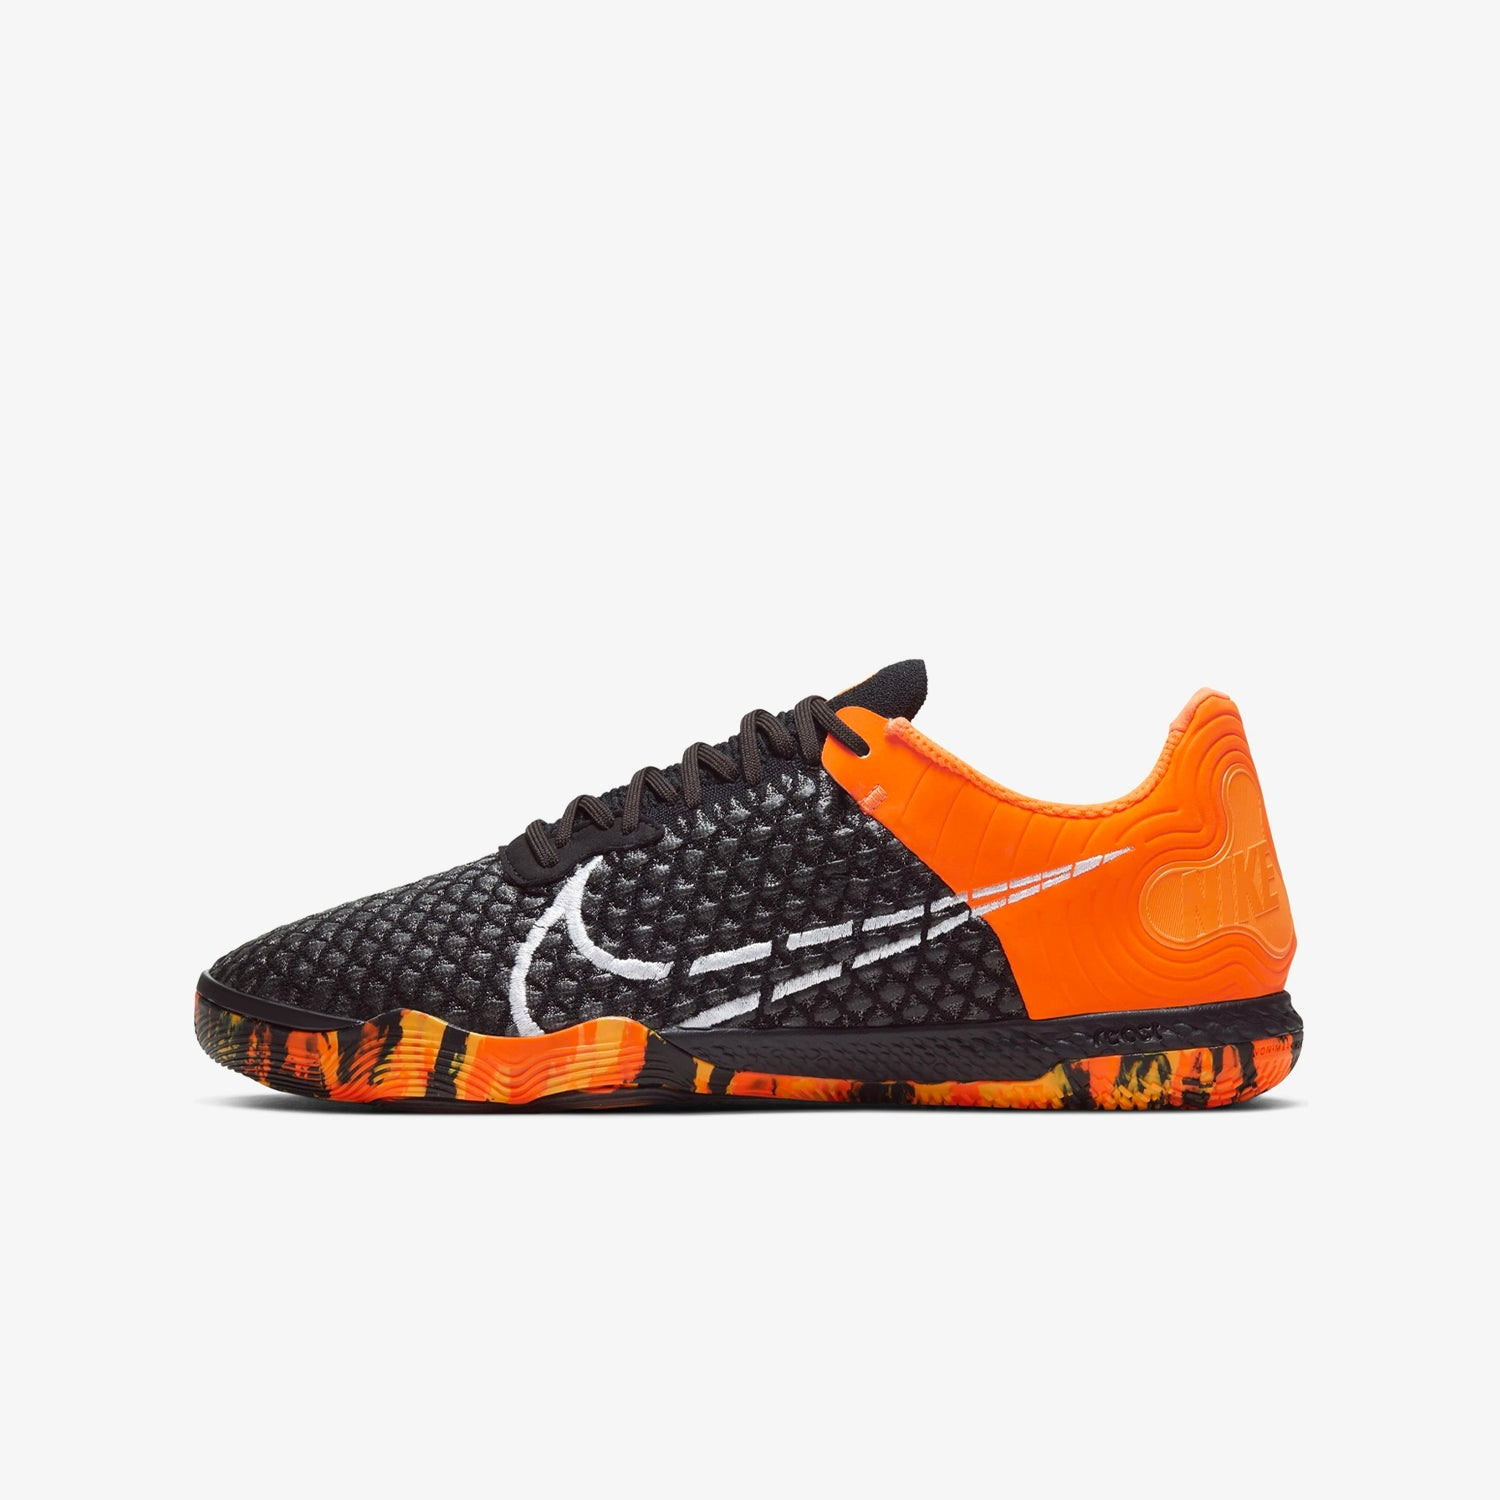 React Gato Indoor/Court Soccer Shoe - Niky's Sports